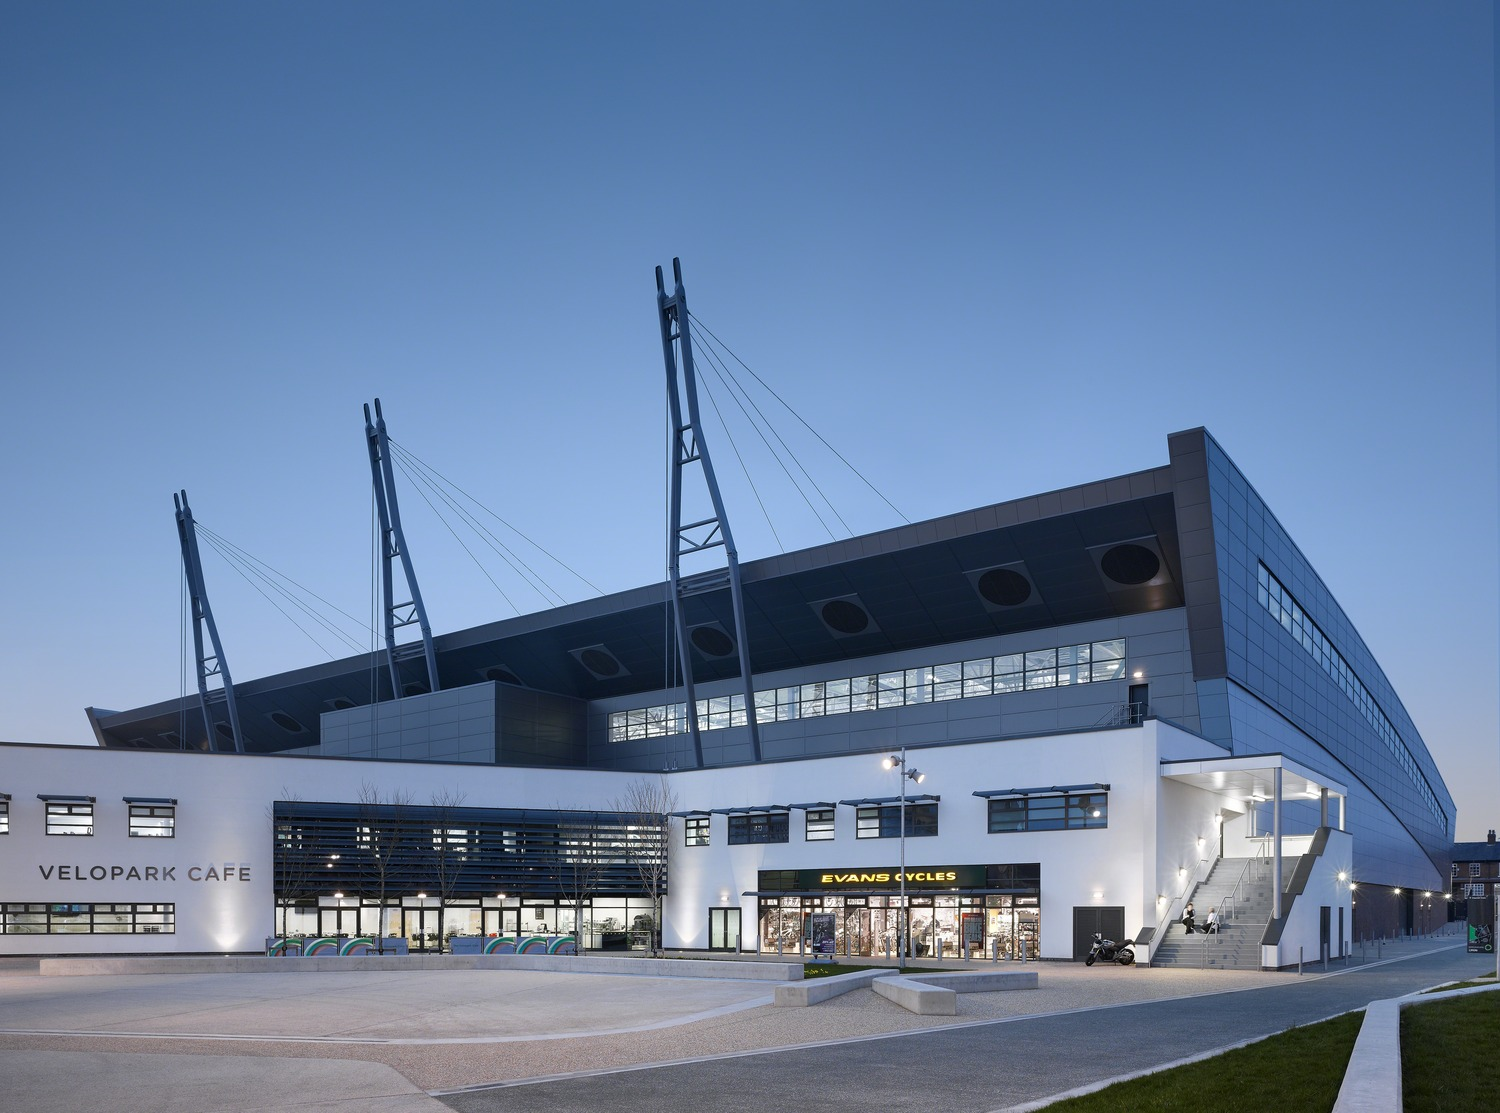 The National Cycling BMX Centre